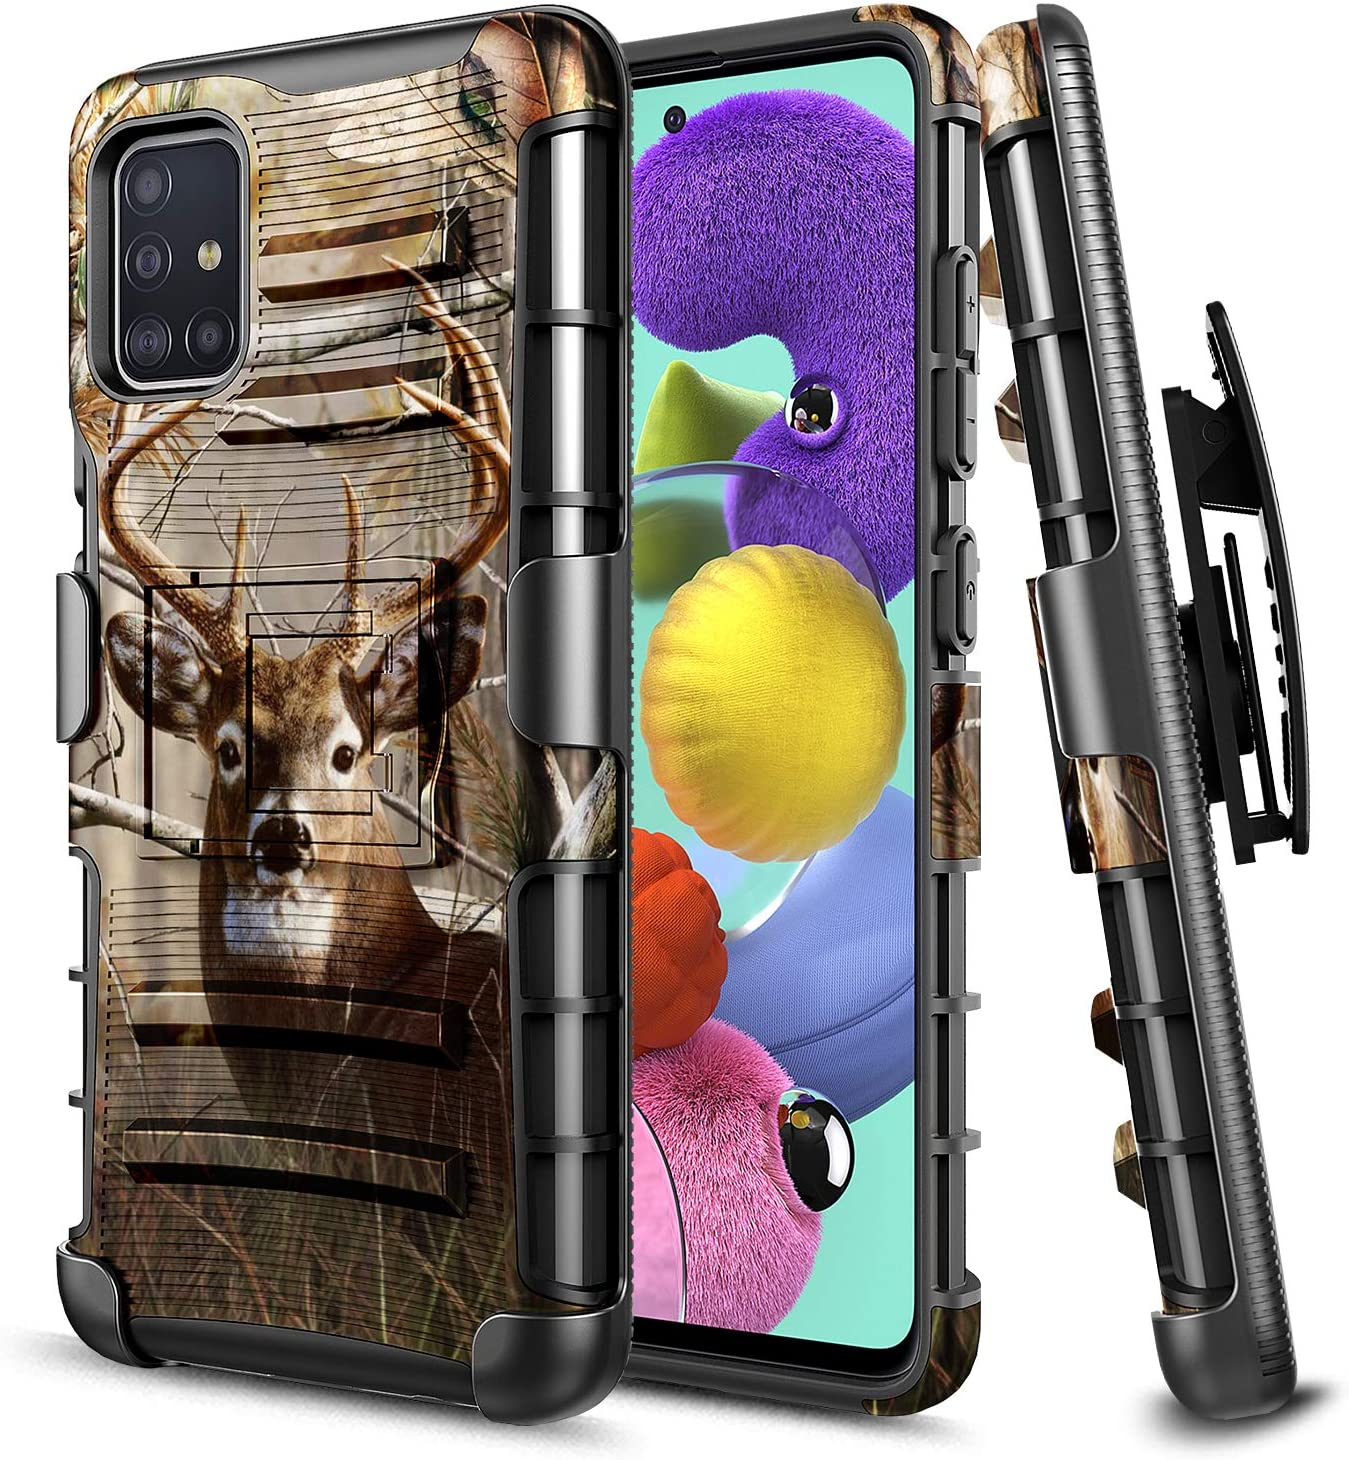 E-Began Case for Samsung Galaxy A51 [Not Fit A51 5G Version], Belt Clip Holster with Kickstand Protective Hybrid Cover Heavy Duty Armor Defender Shockproof Rugged Premium Case -Deer